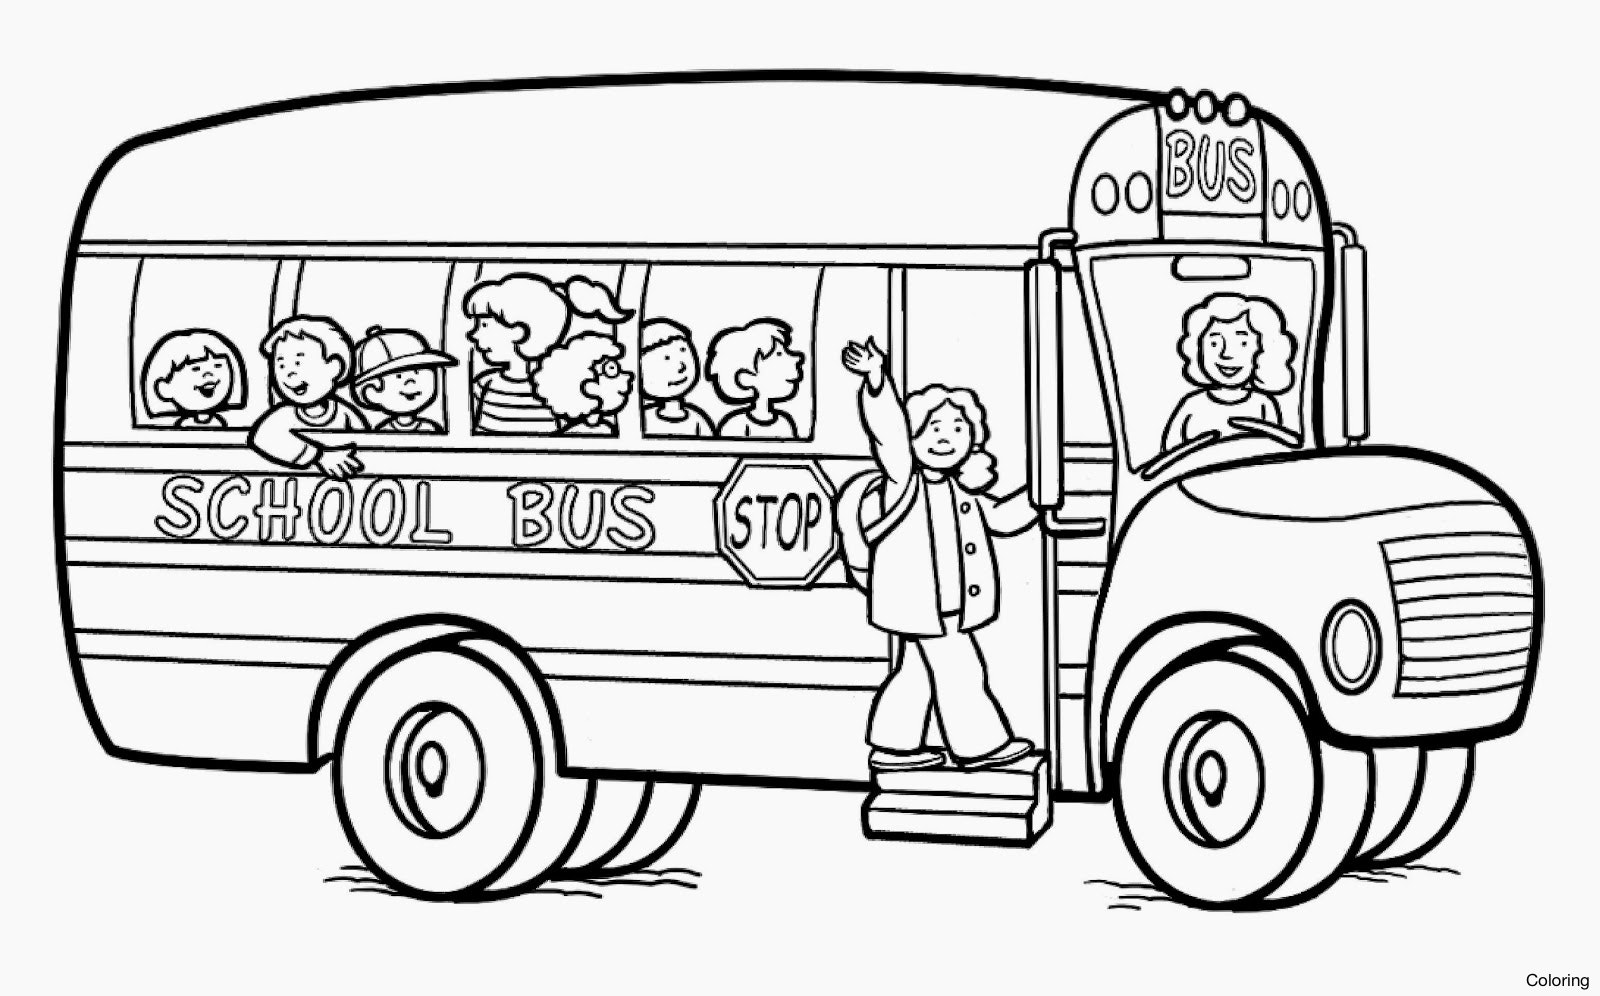 1600x996 School Bus Coloring Pages Pictures Page 23f For Free Printable Diaiz